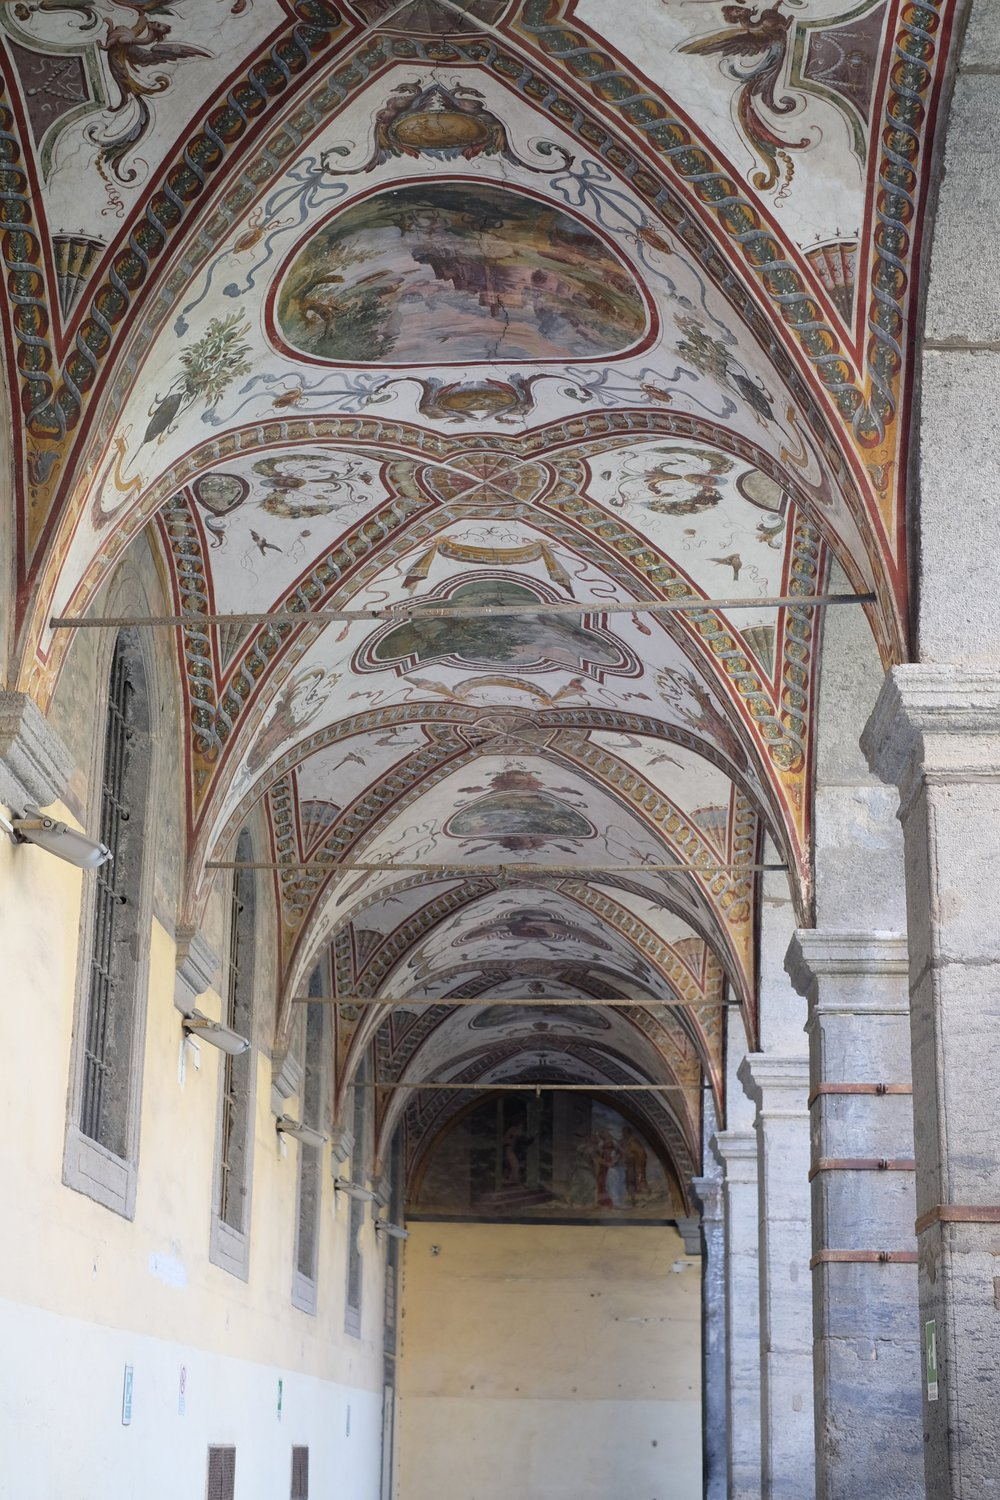 Frescoes of the hospital courtyard.